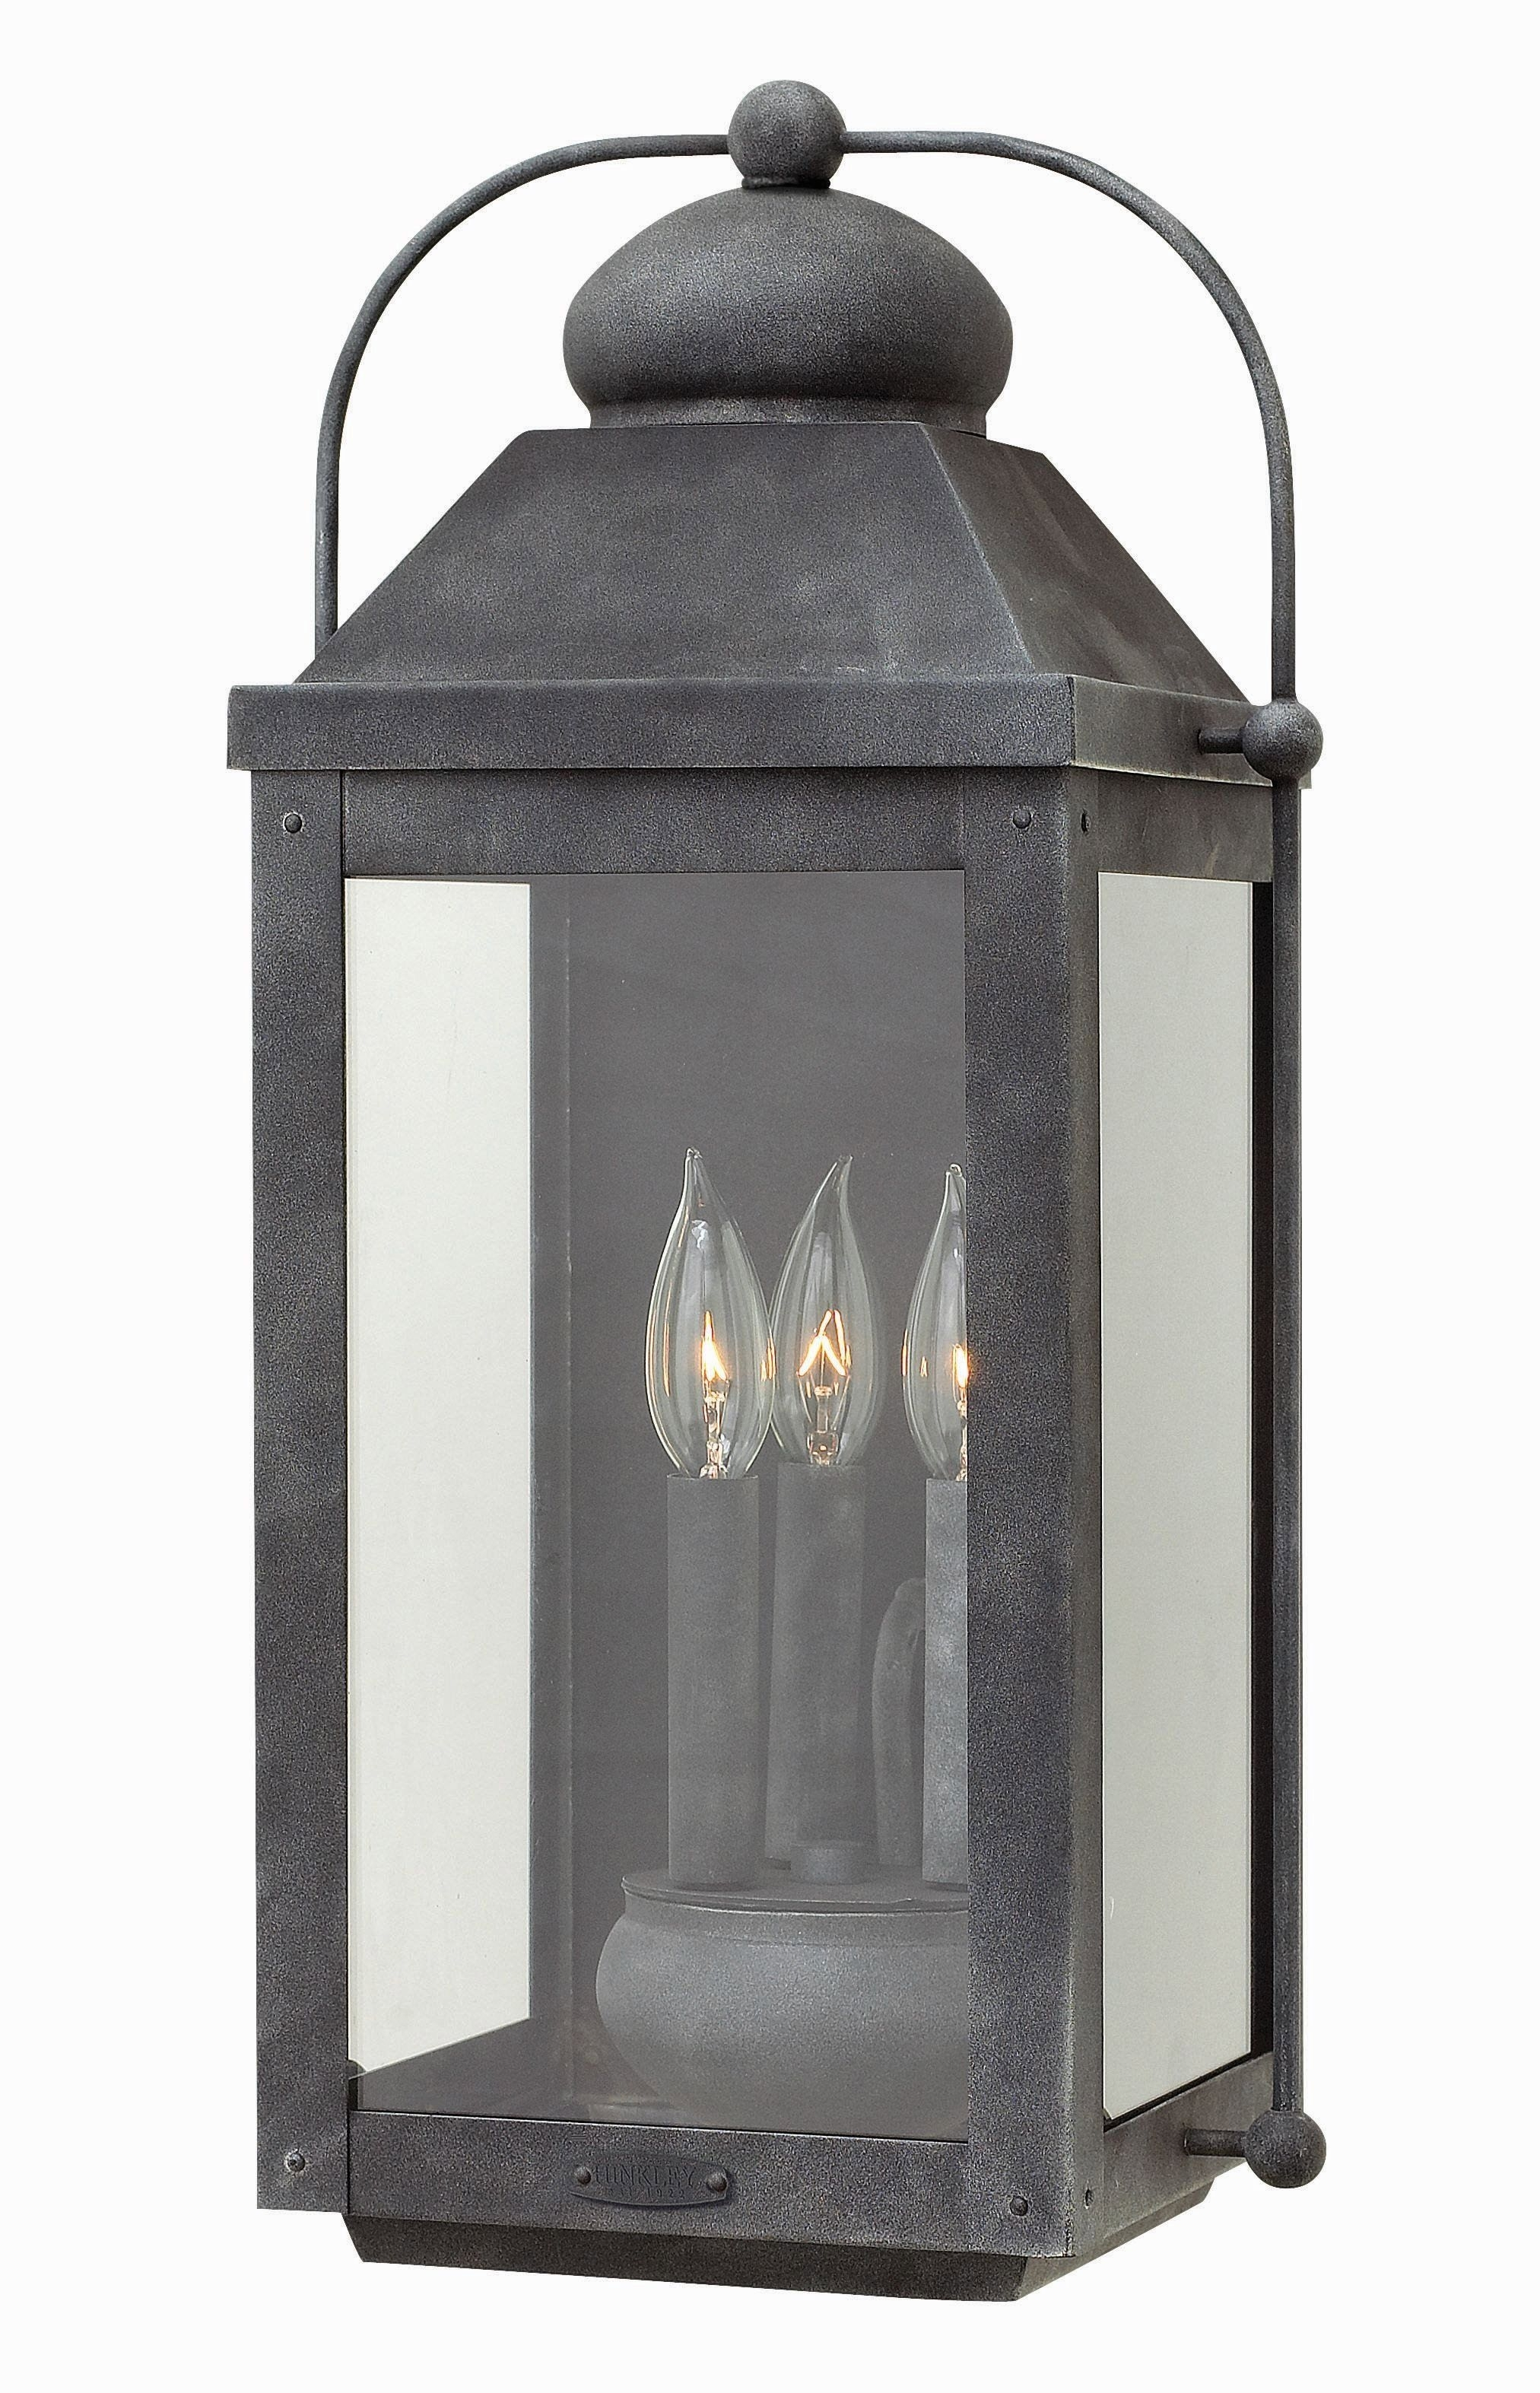 Anchorage - Three Light Outdoor Wall Mount | Lighting | Pinterest with Wall Mounted Outdoor Lanterns (Image 1 of 20)